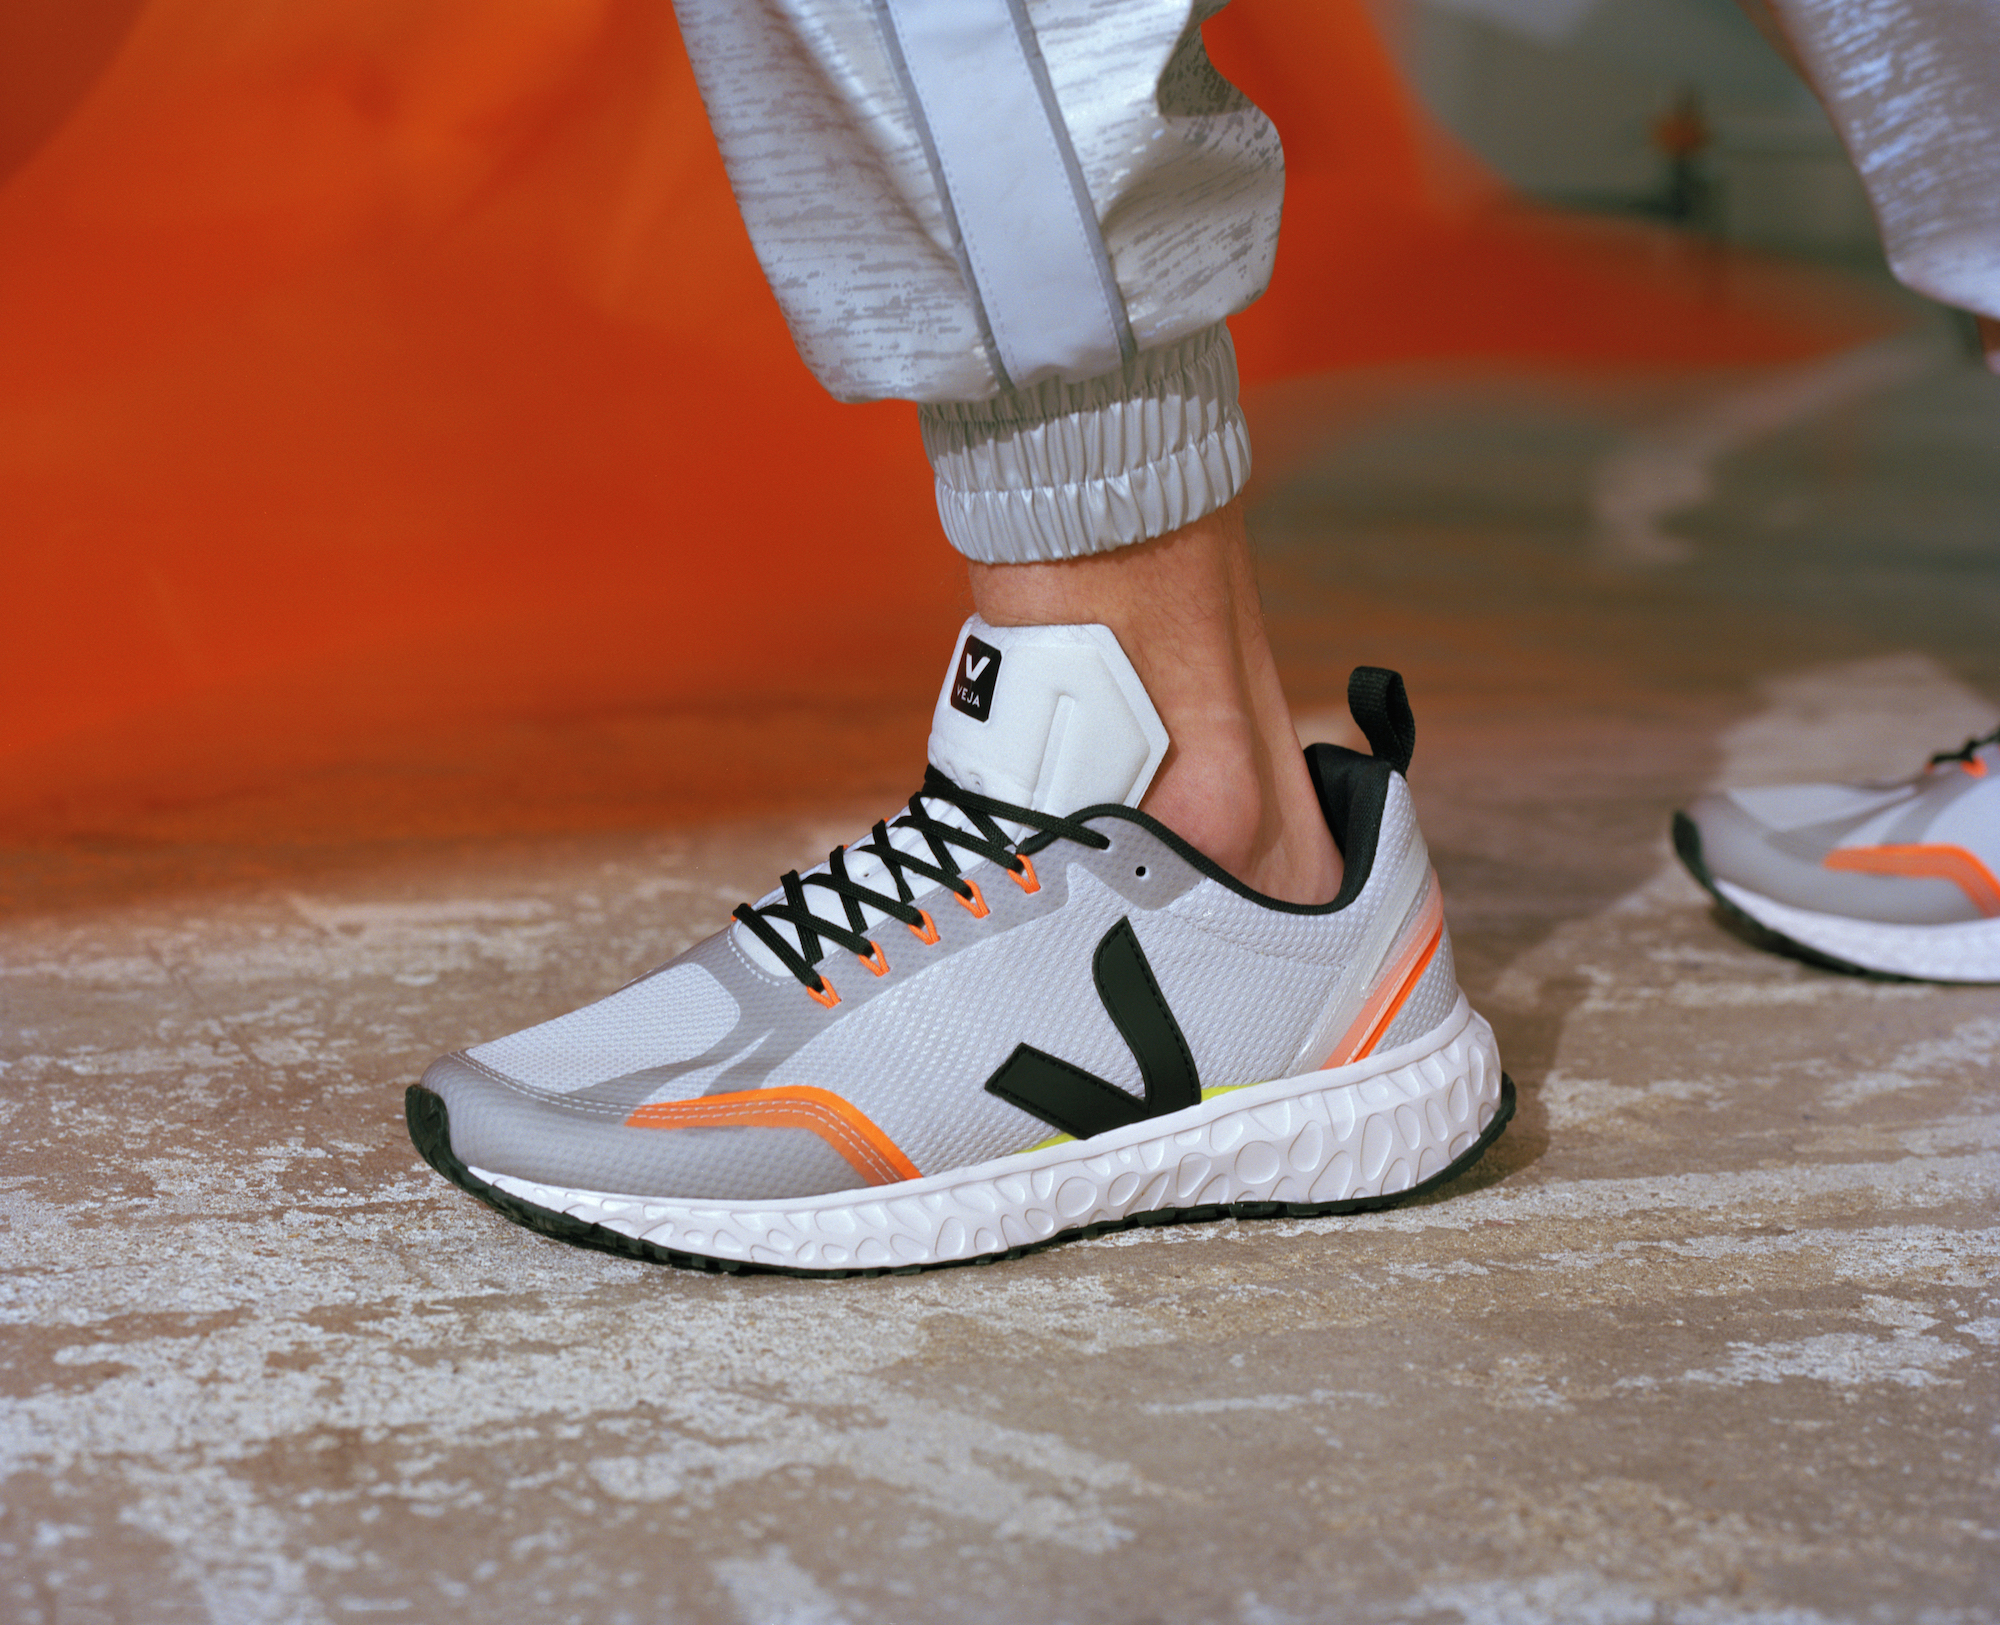 VEJA Launches an Eco Friendly Running Shoe That Helps the